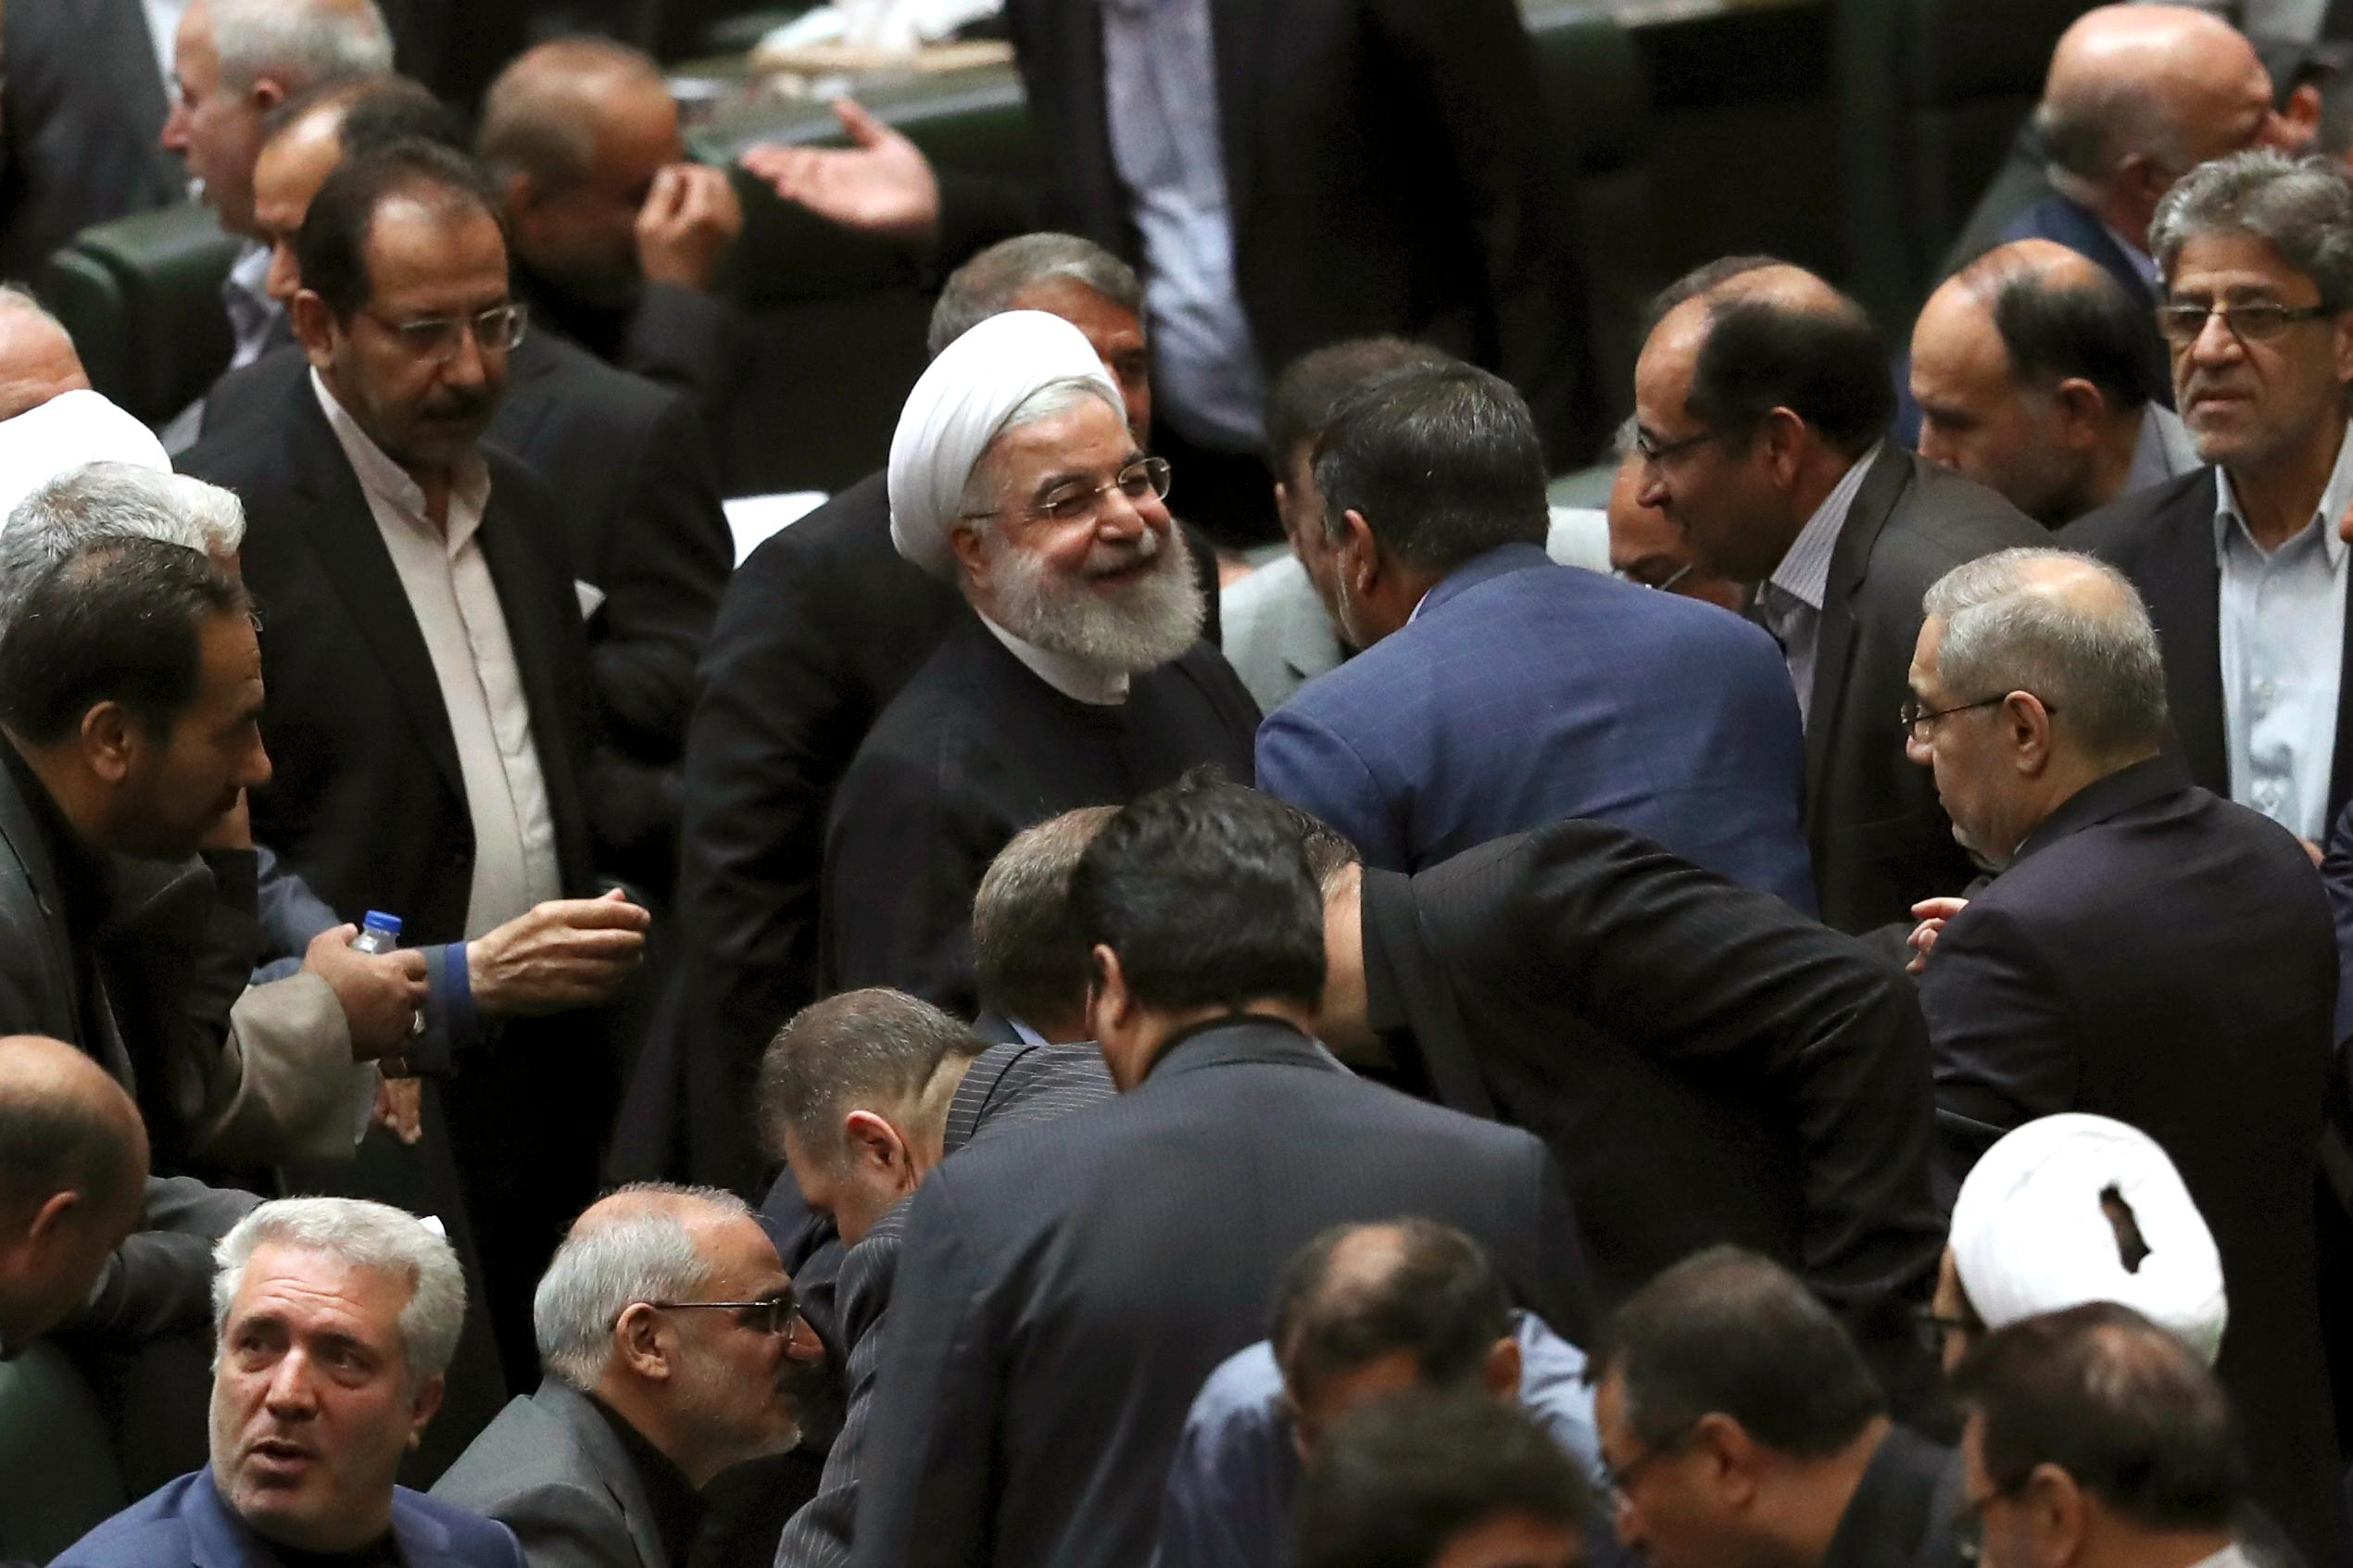 Iranian President Hassan Rouhani, center, listens to a lawmaker after defending his proposed tourism and education ministers, in Tehran, Iran, Tuesday, Sept. 3, 2019. (AP Photo/Vahid Salemi)